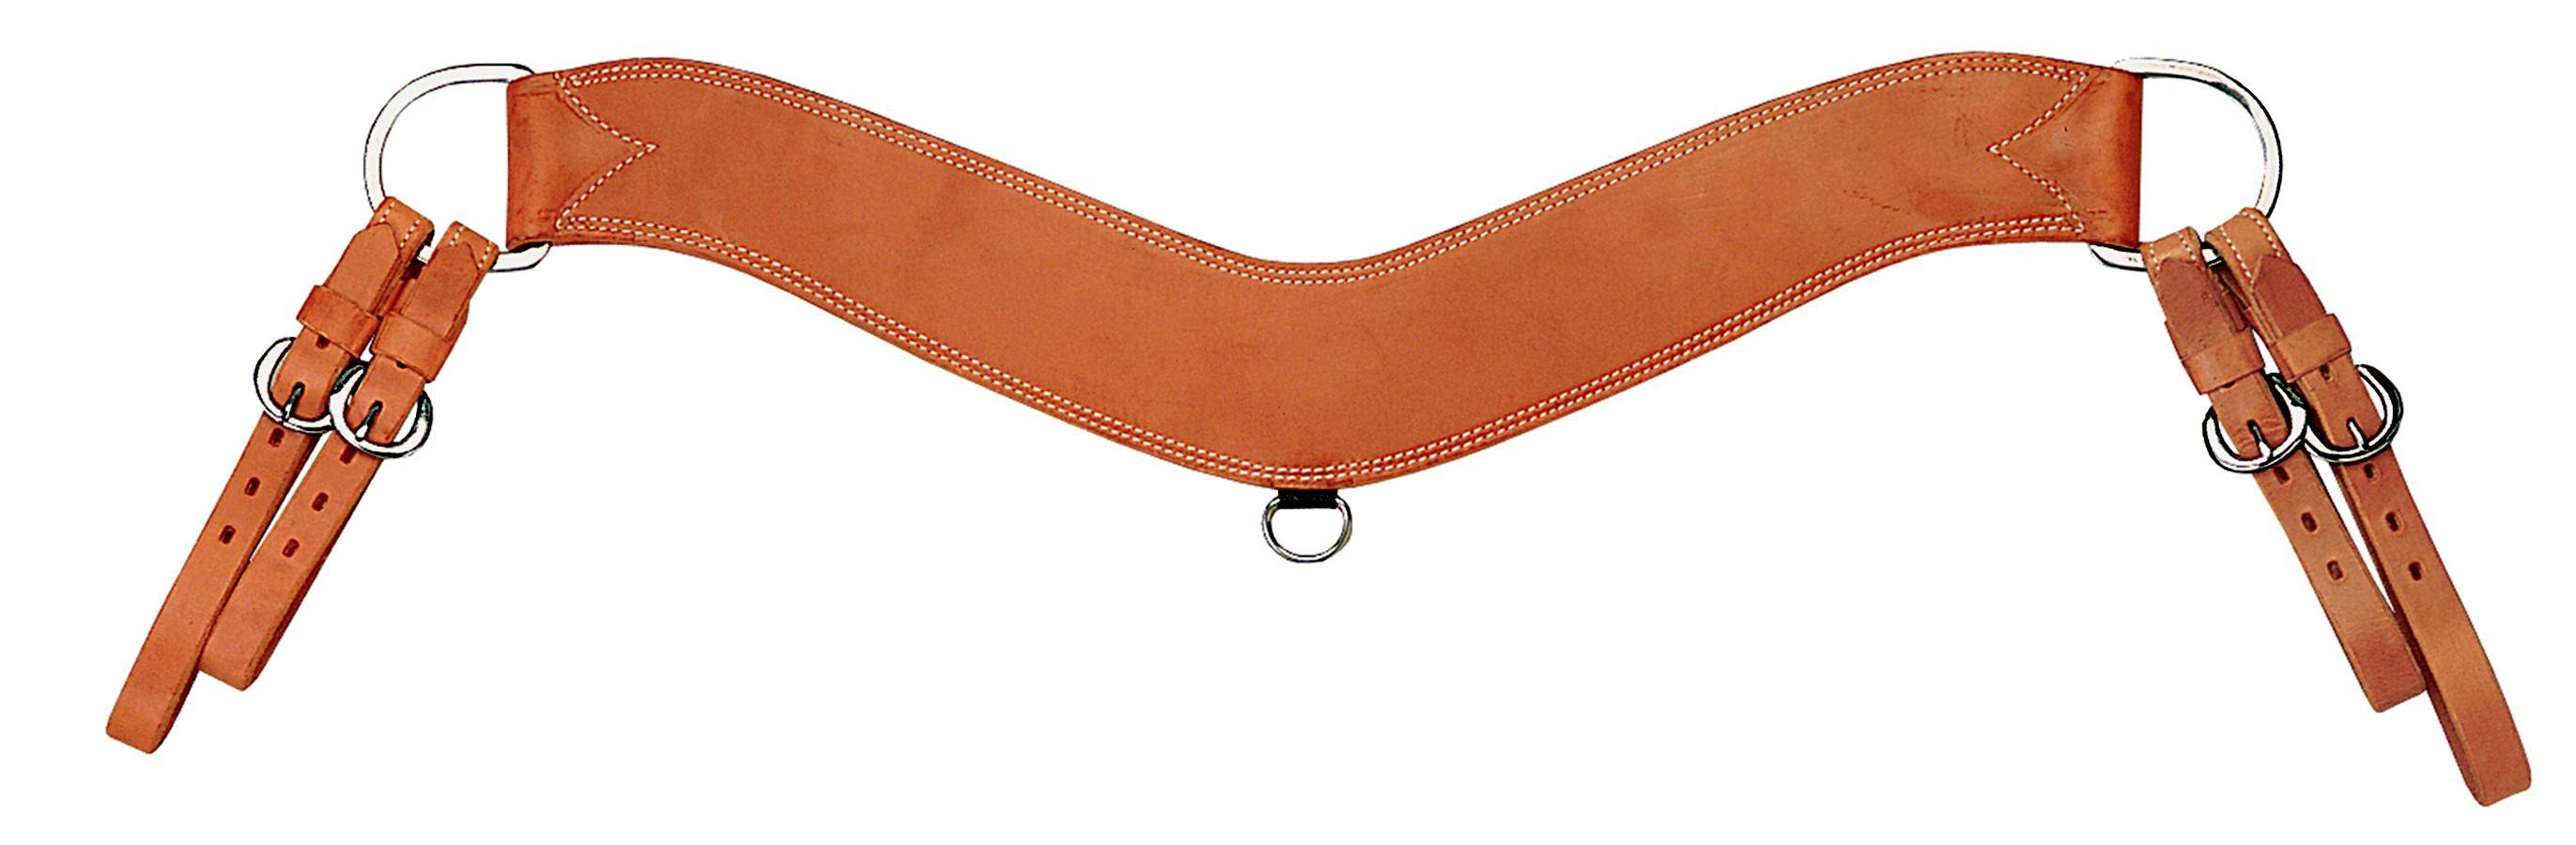 Weaver Leather Heavy Duty Roper Breast Collar